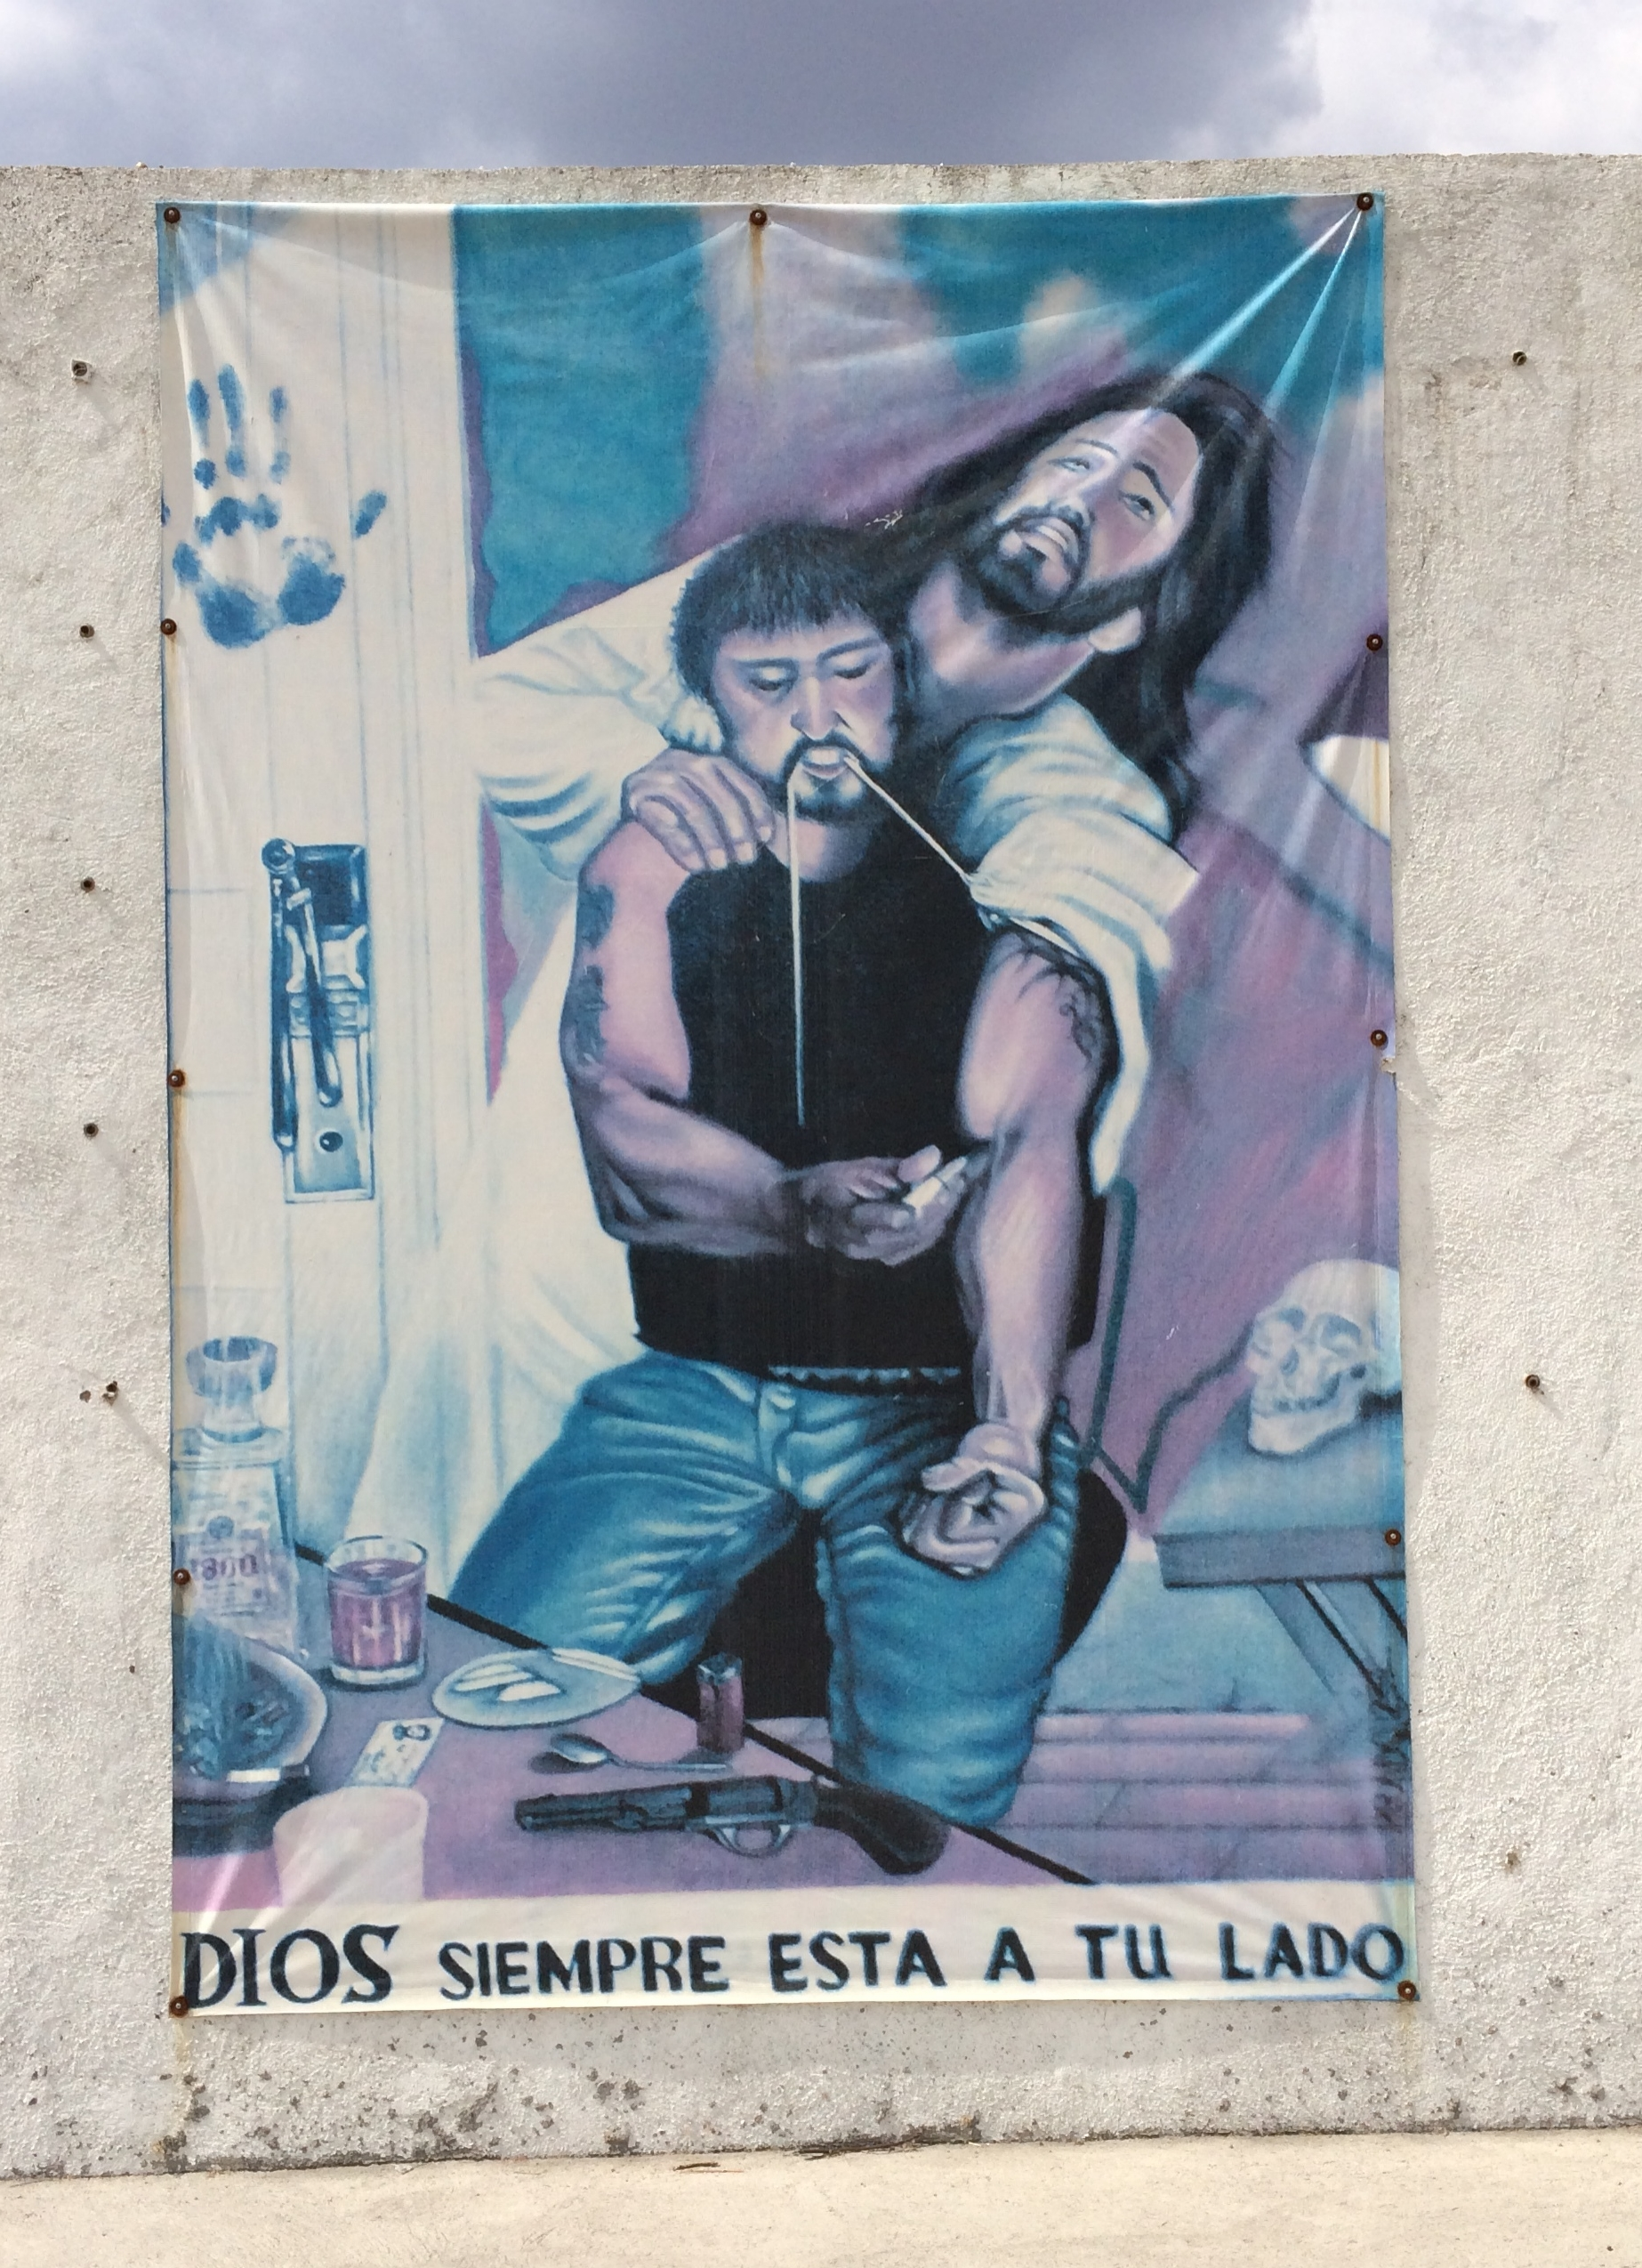 CALVARY banner found in Mexico